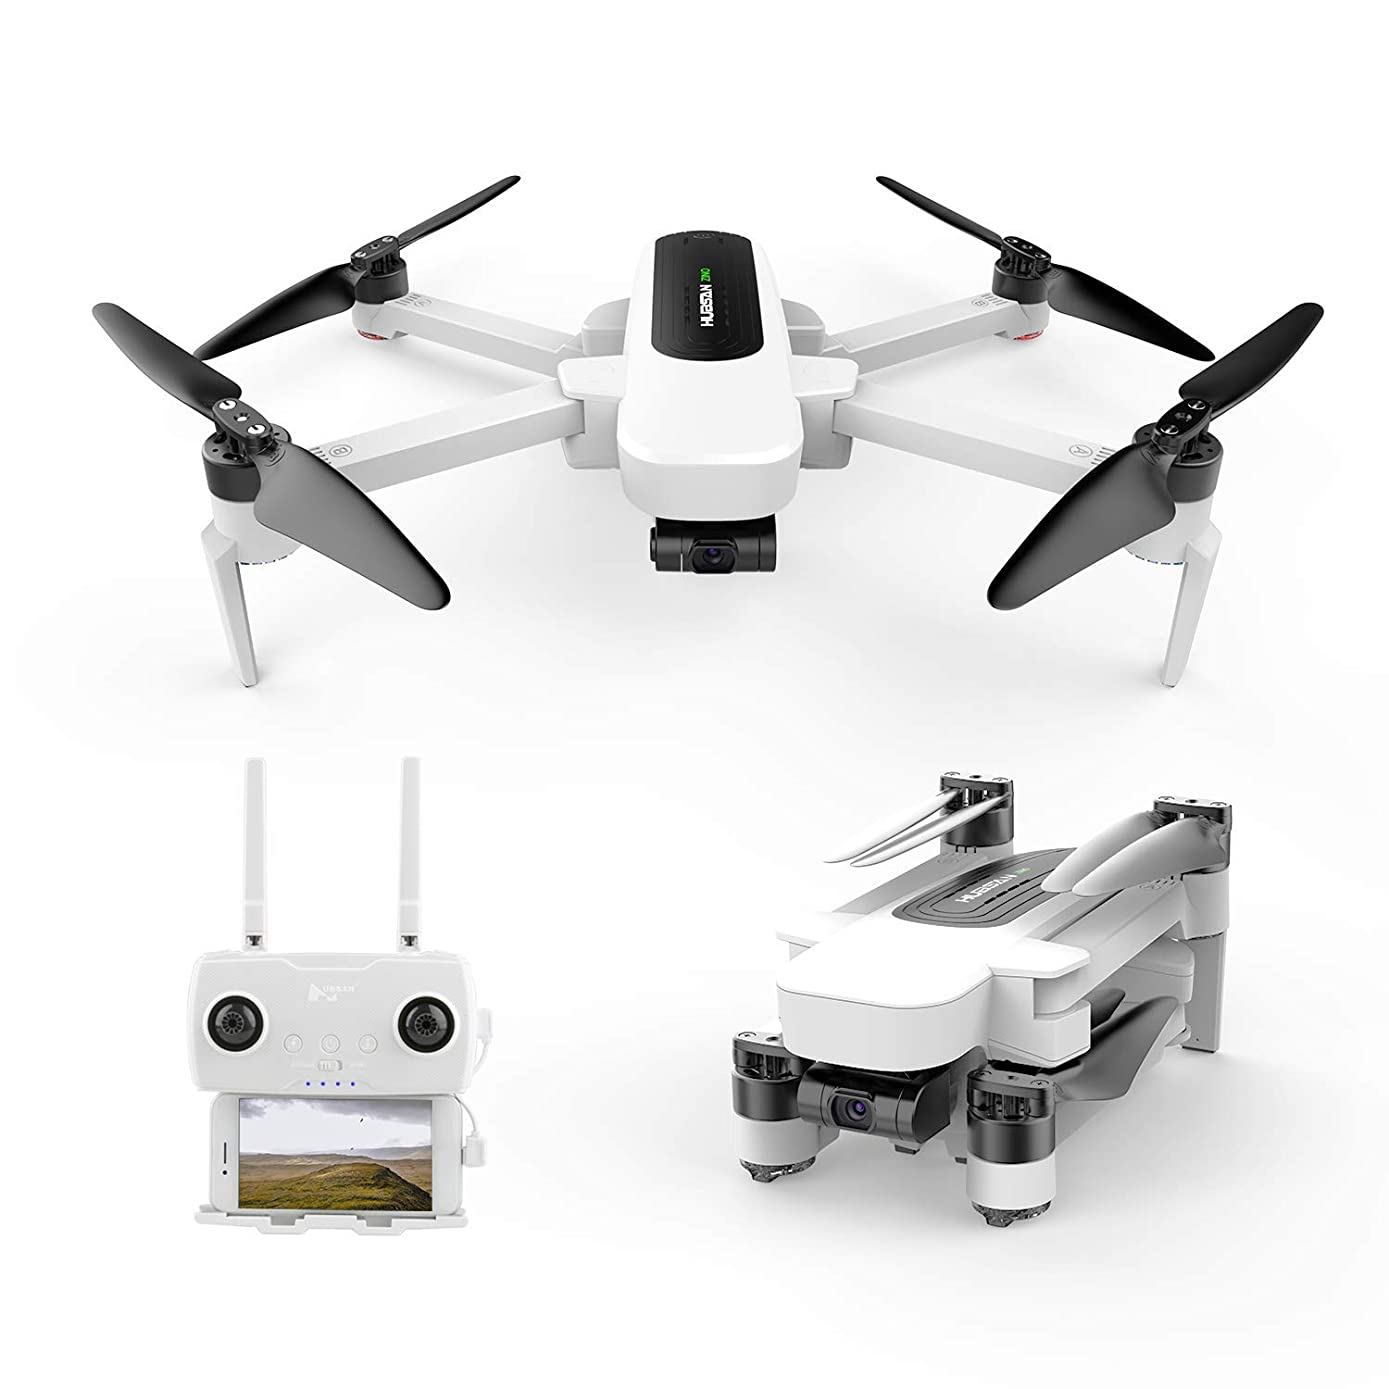 Hubsan Zino Drone Foldable Quadcopter 4K UHD Video Camera 3-axis(Yaw,Picth,Roll) Brushless Motor with GPS 5.8G WiFi FPV